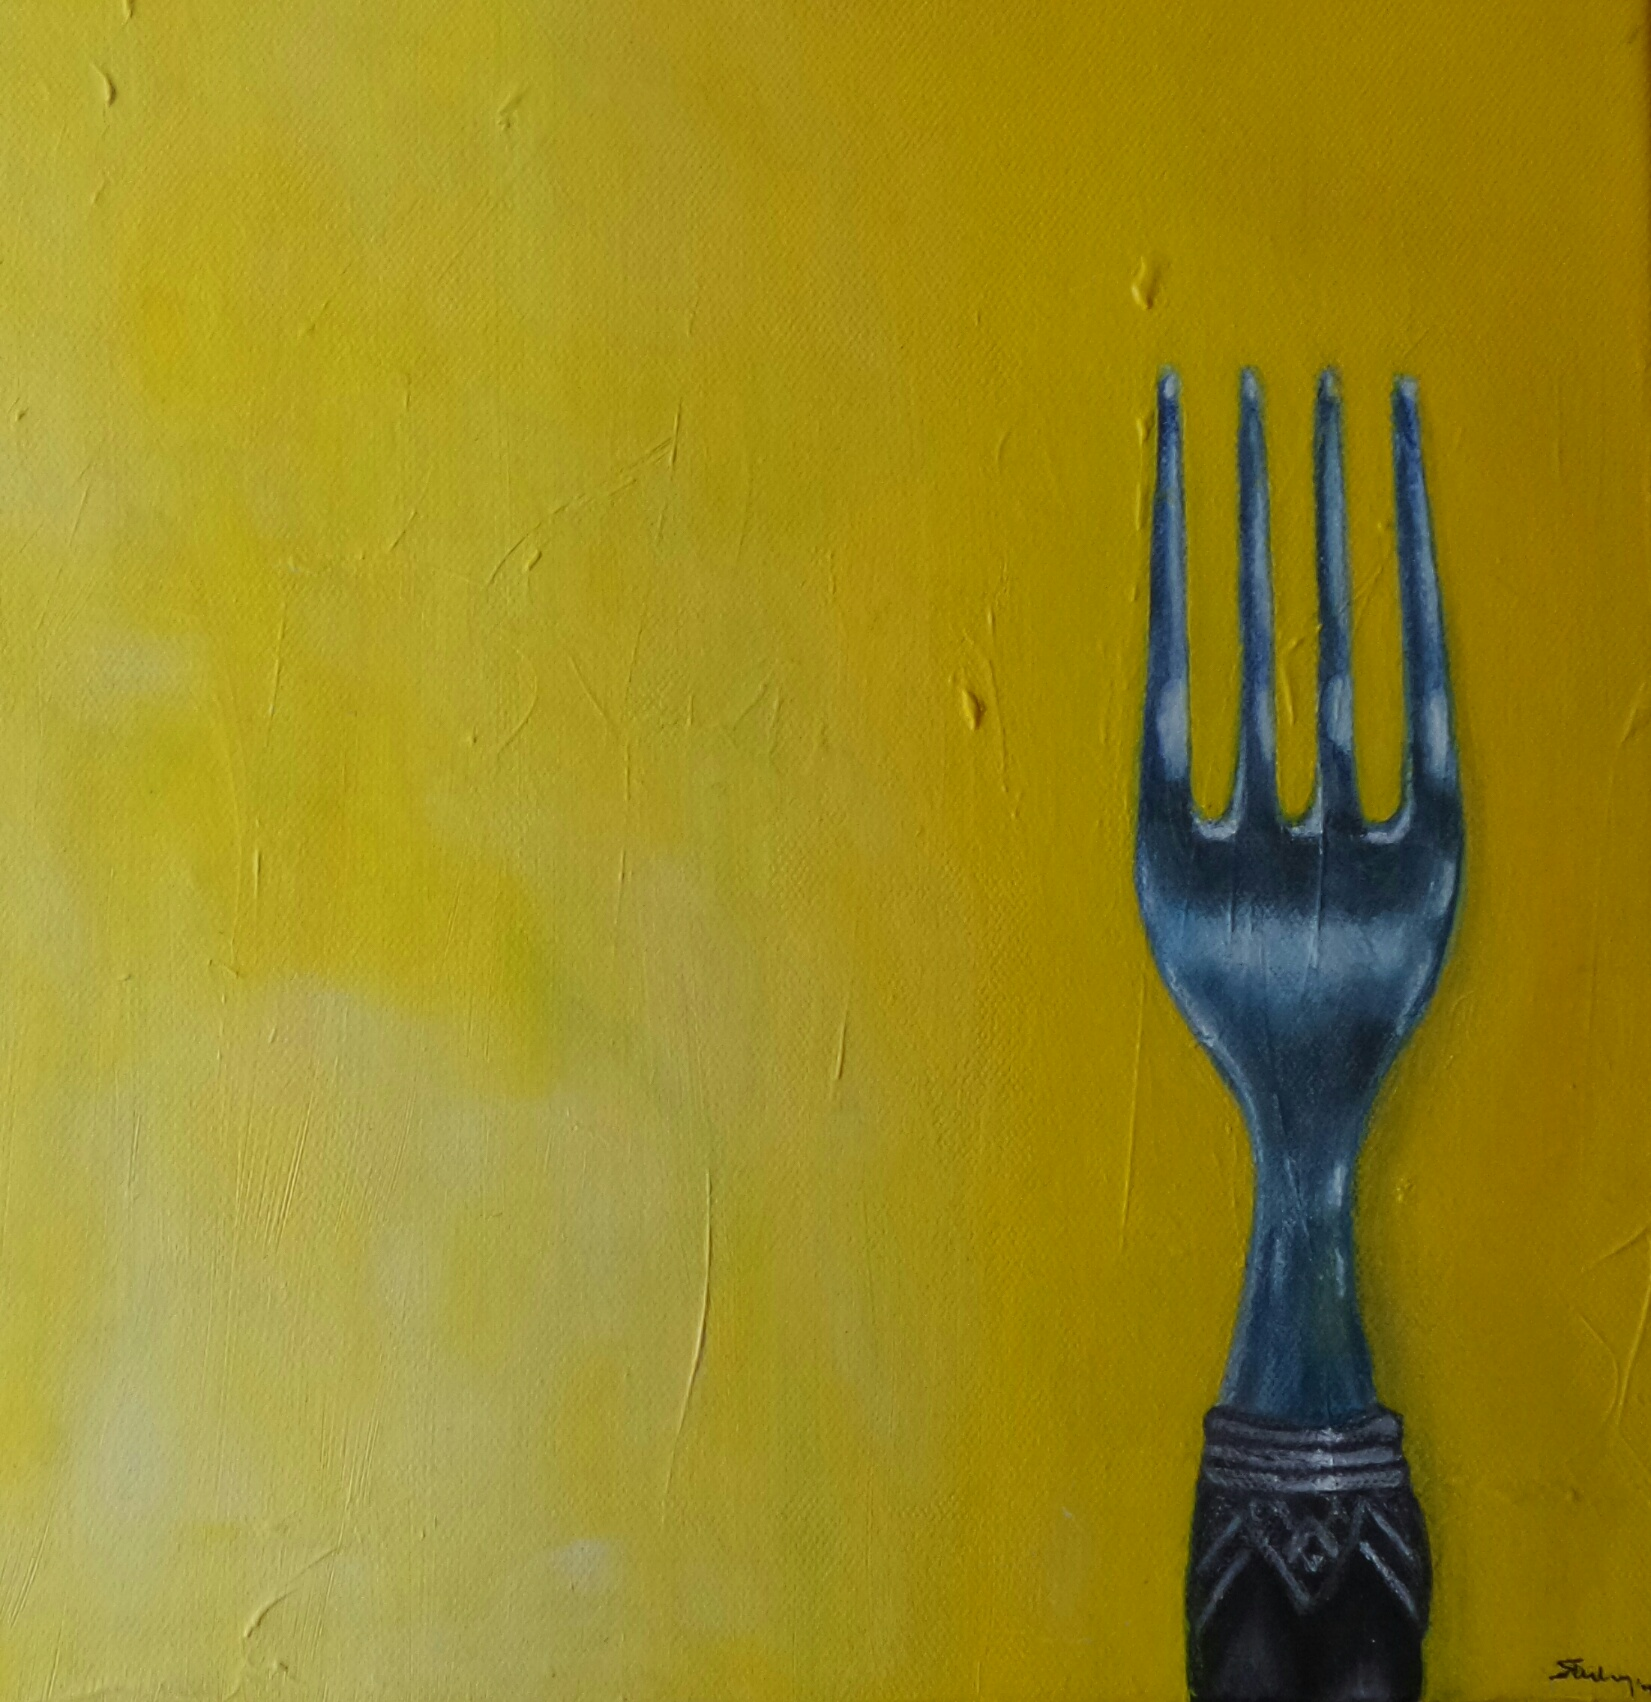 YELLOW FORK